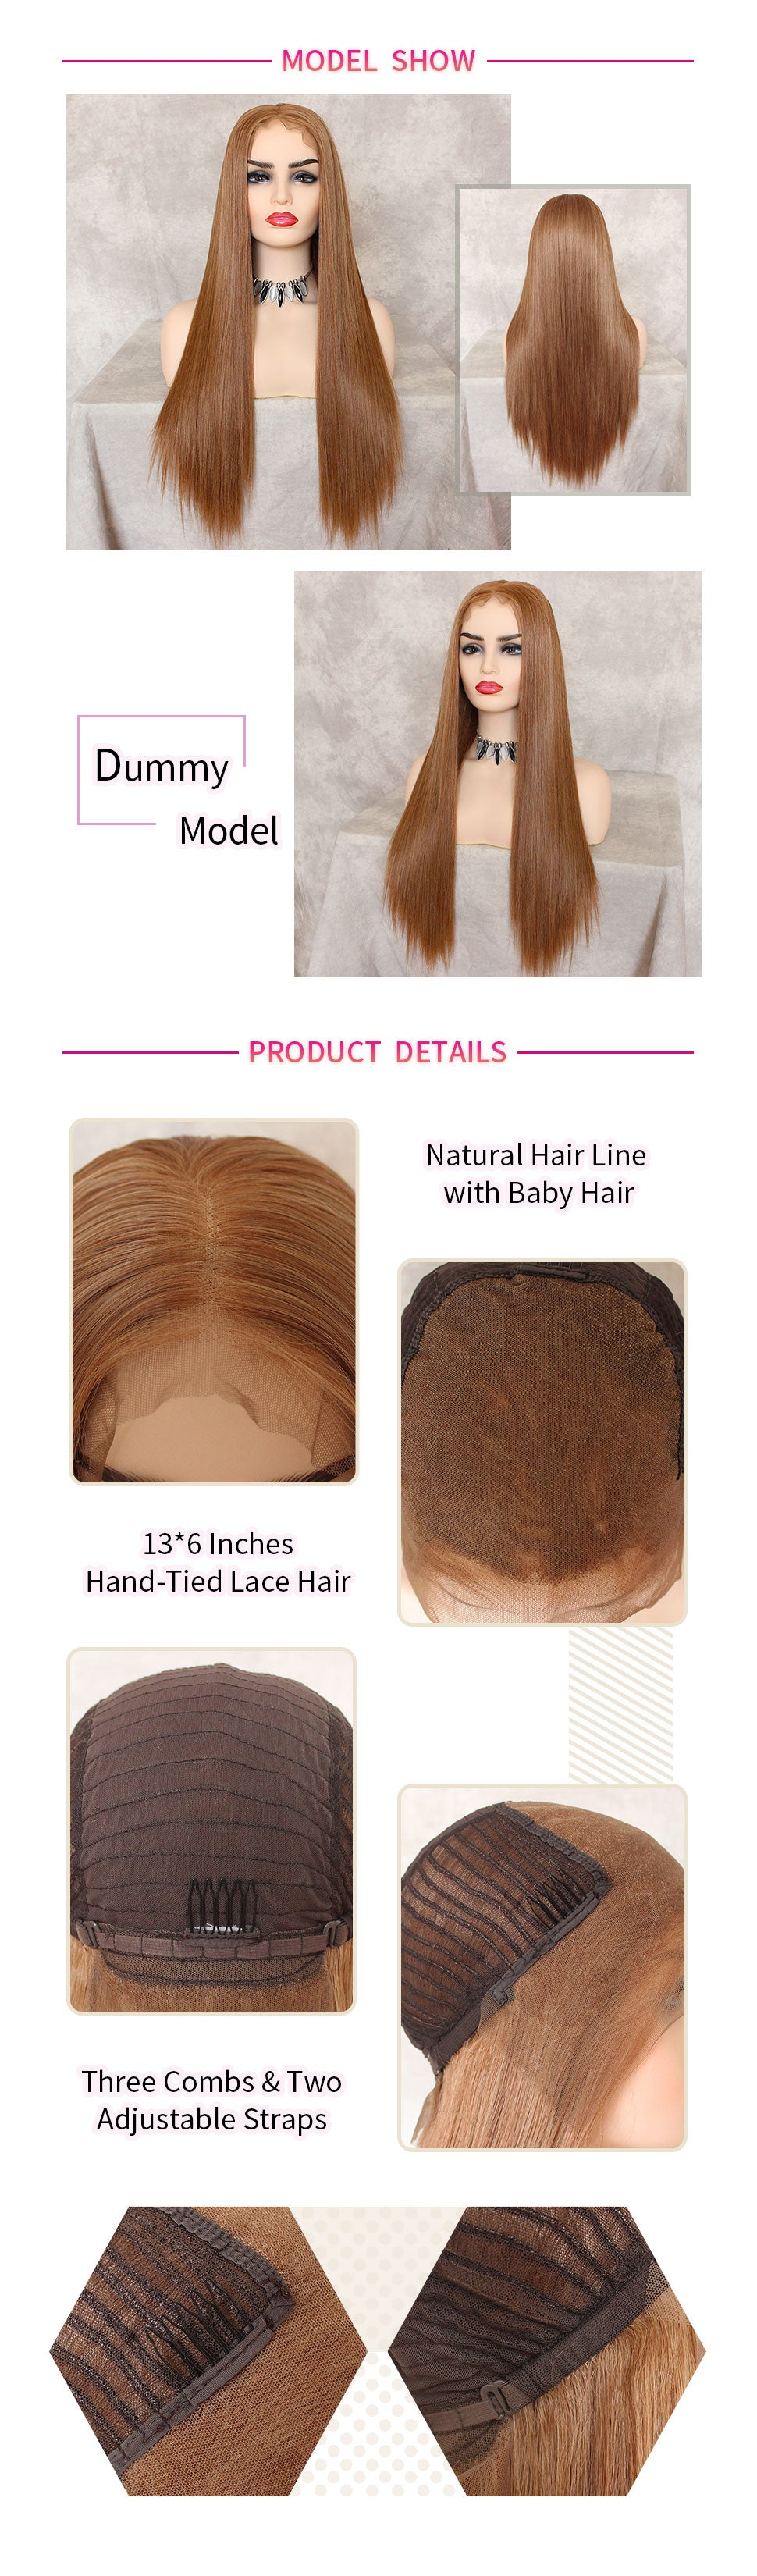 ReadyWig Strawberry Blonde Silky Straight Hair 13*6 Lace Front Wig hair details